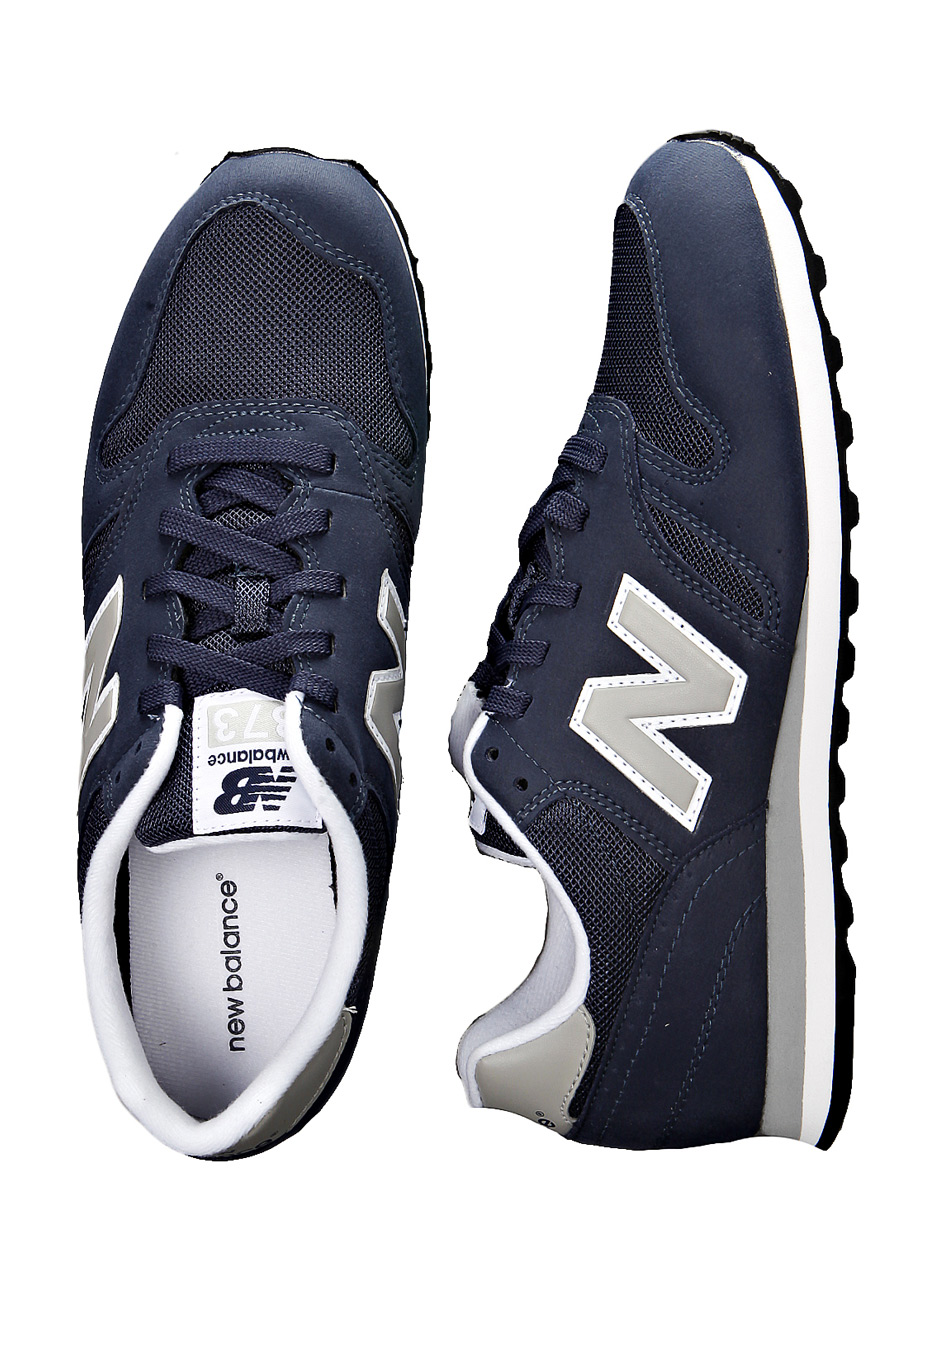 new balance 373 navy blue pink